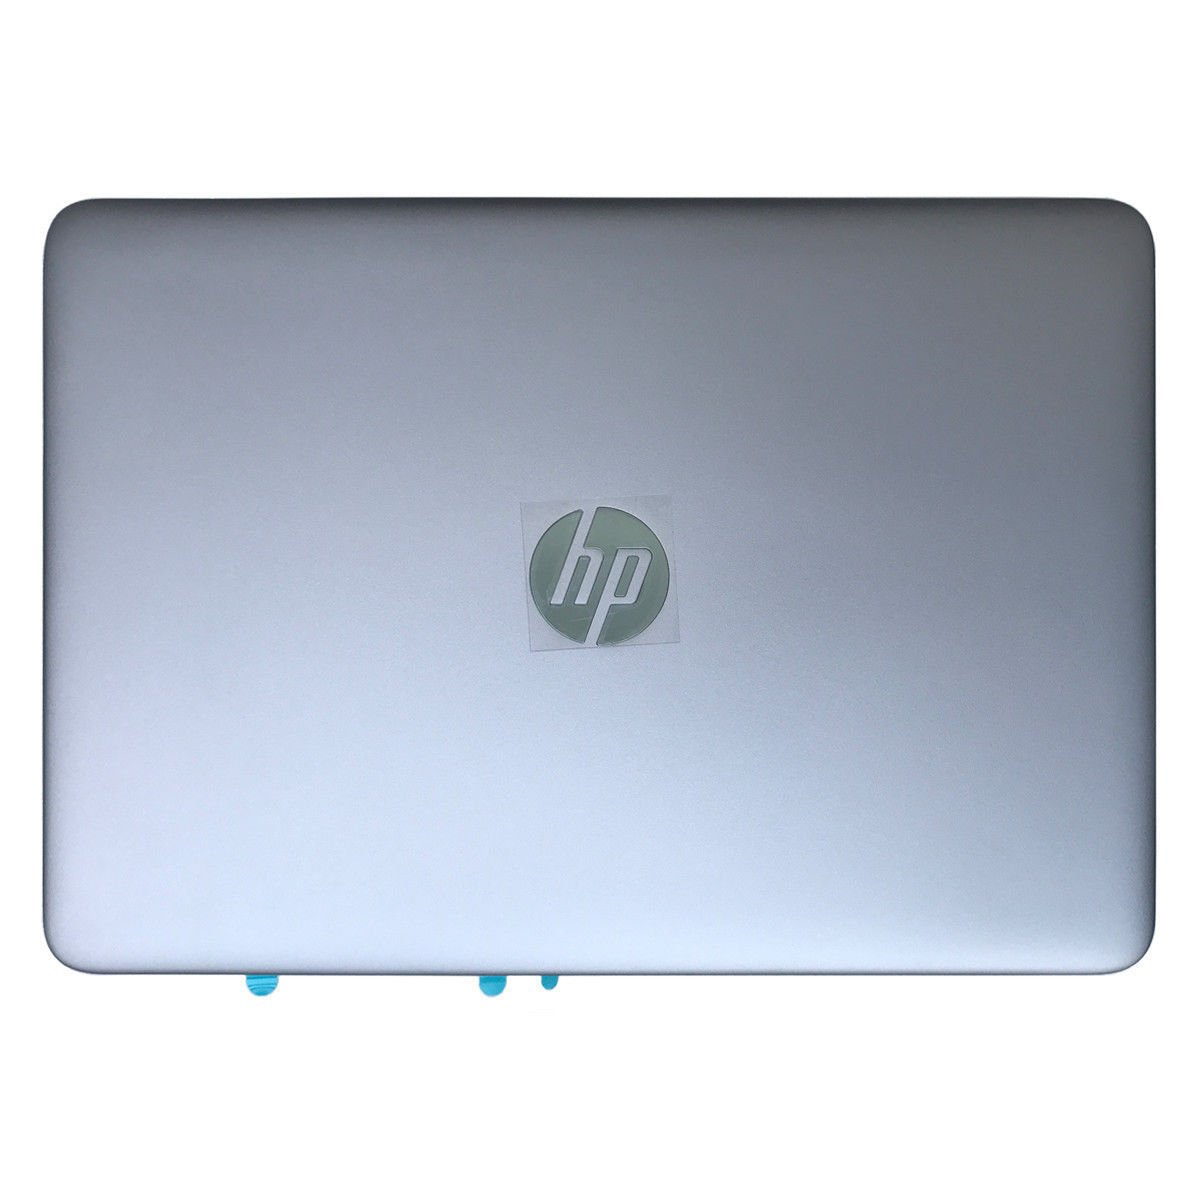 Laptop LCD Back Cover Top Case Rear Lid Silver for HP EliteBook 840 G3 821161-001 by for HP (Image #1)